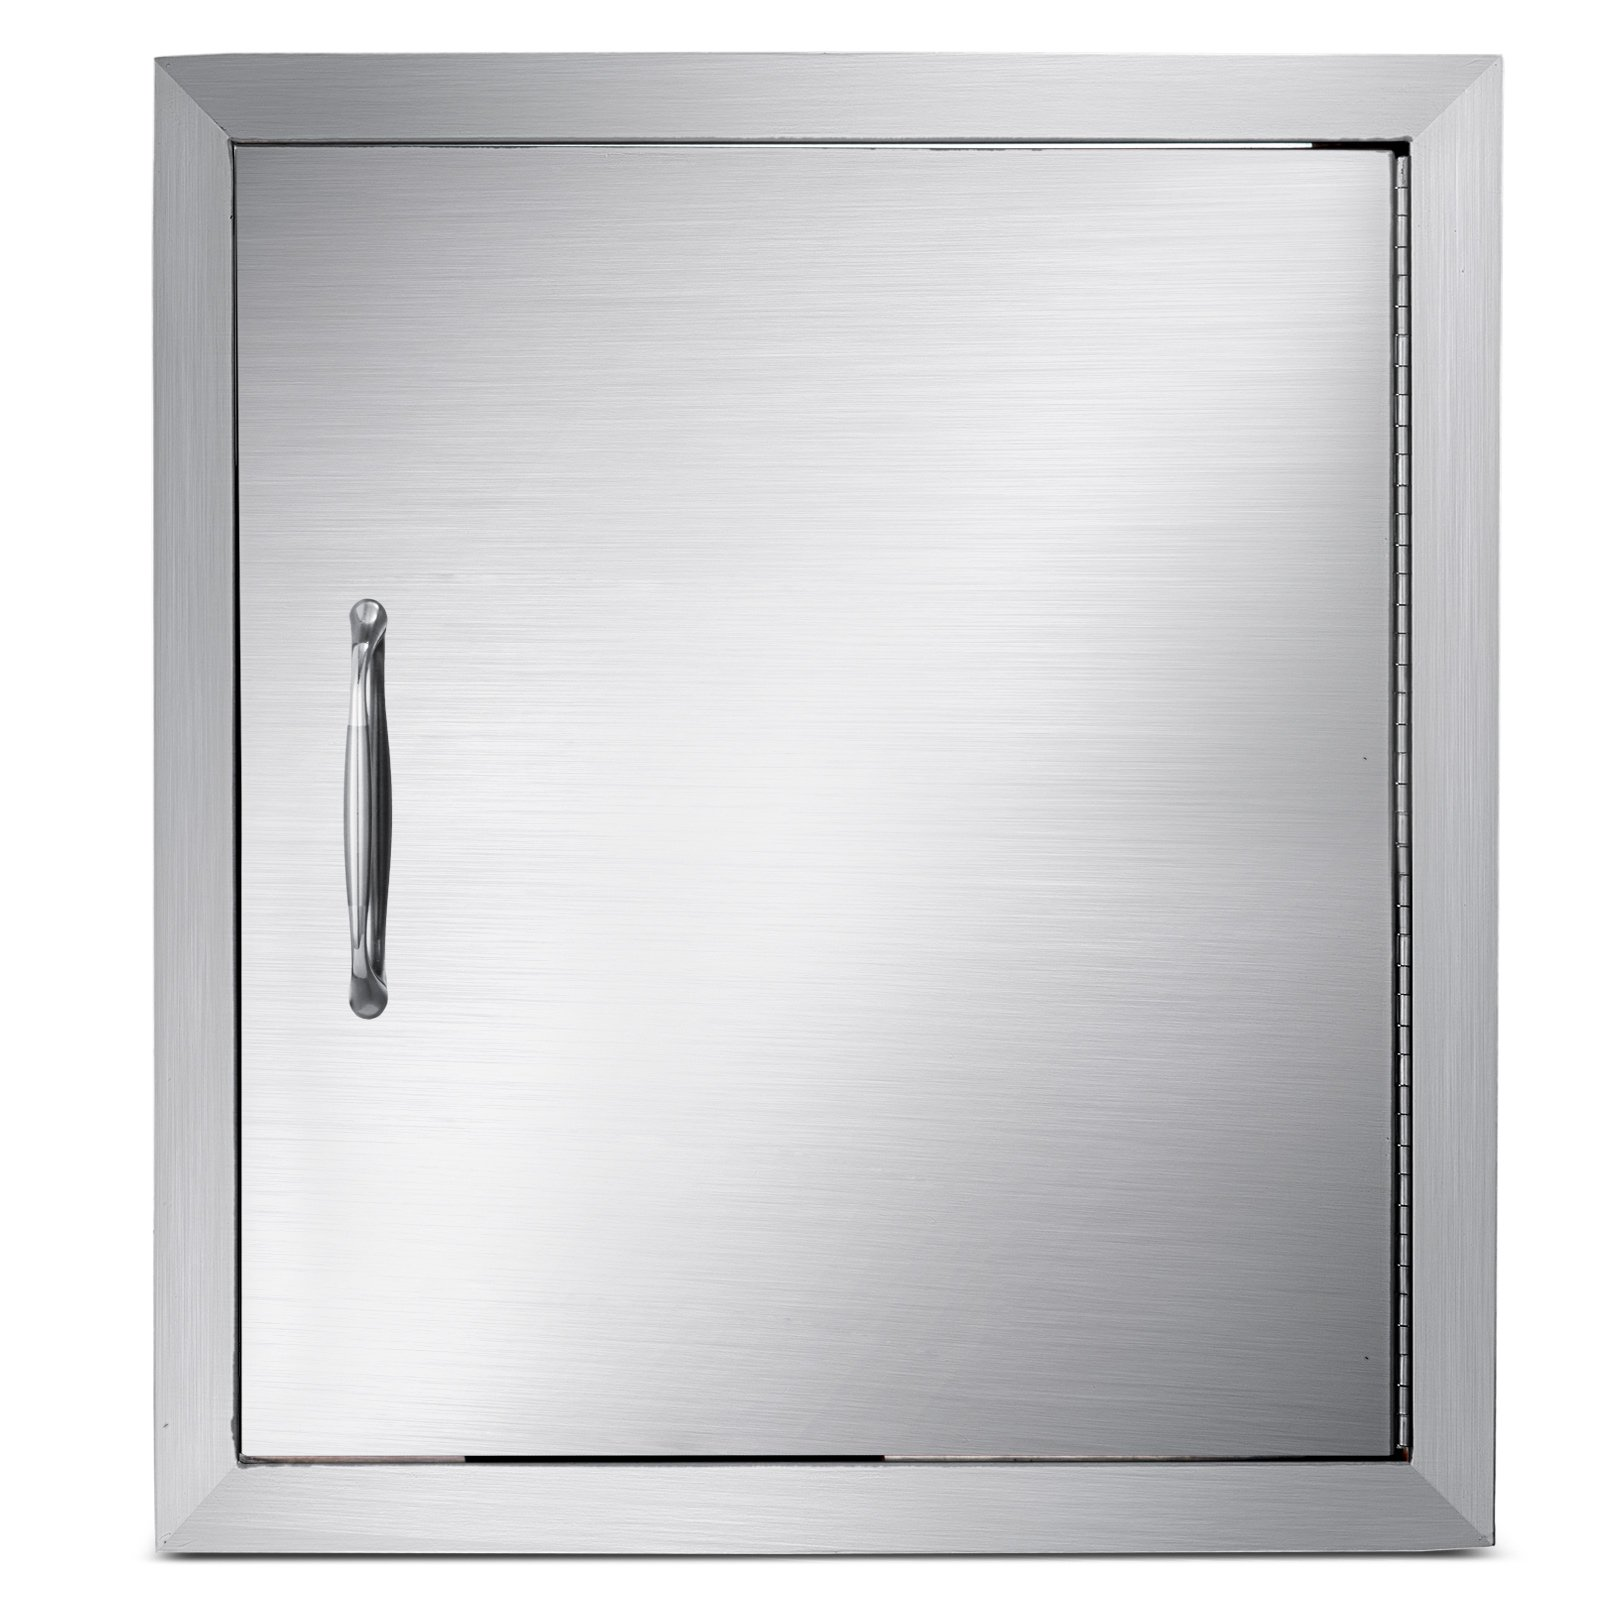 Mophorn Outdoor Kitchen Access Door 18''x 20'' Single Wall Construction Stainless Steel Flush Mount for BBQ Island, 18inch x 20inch,